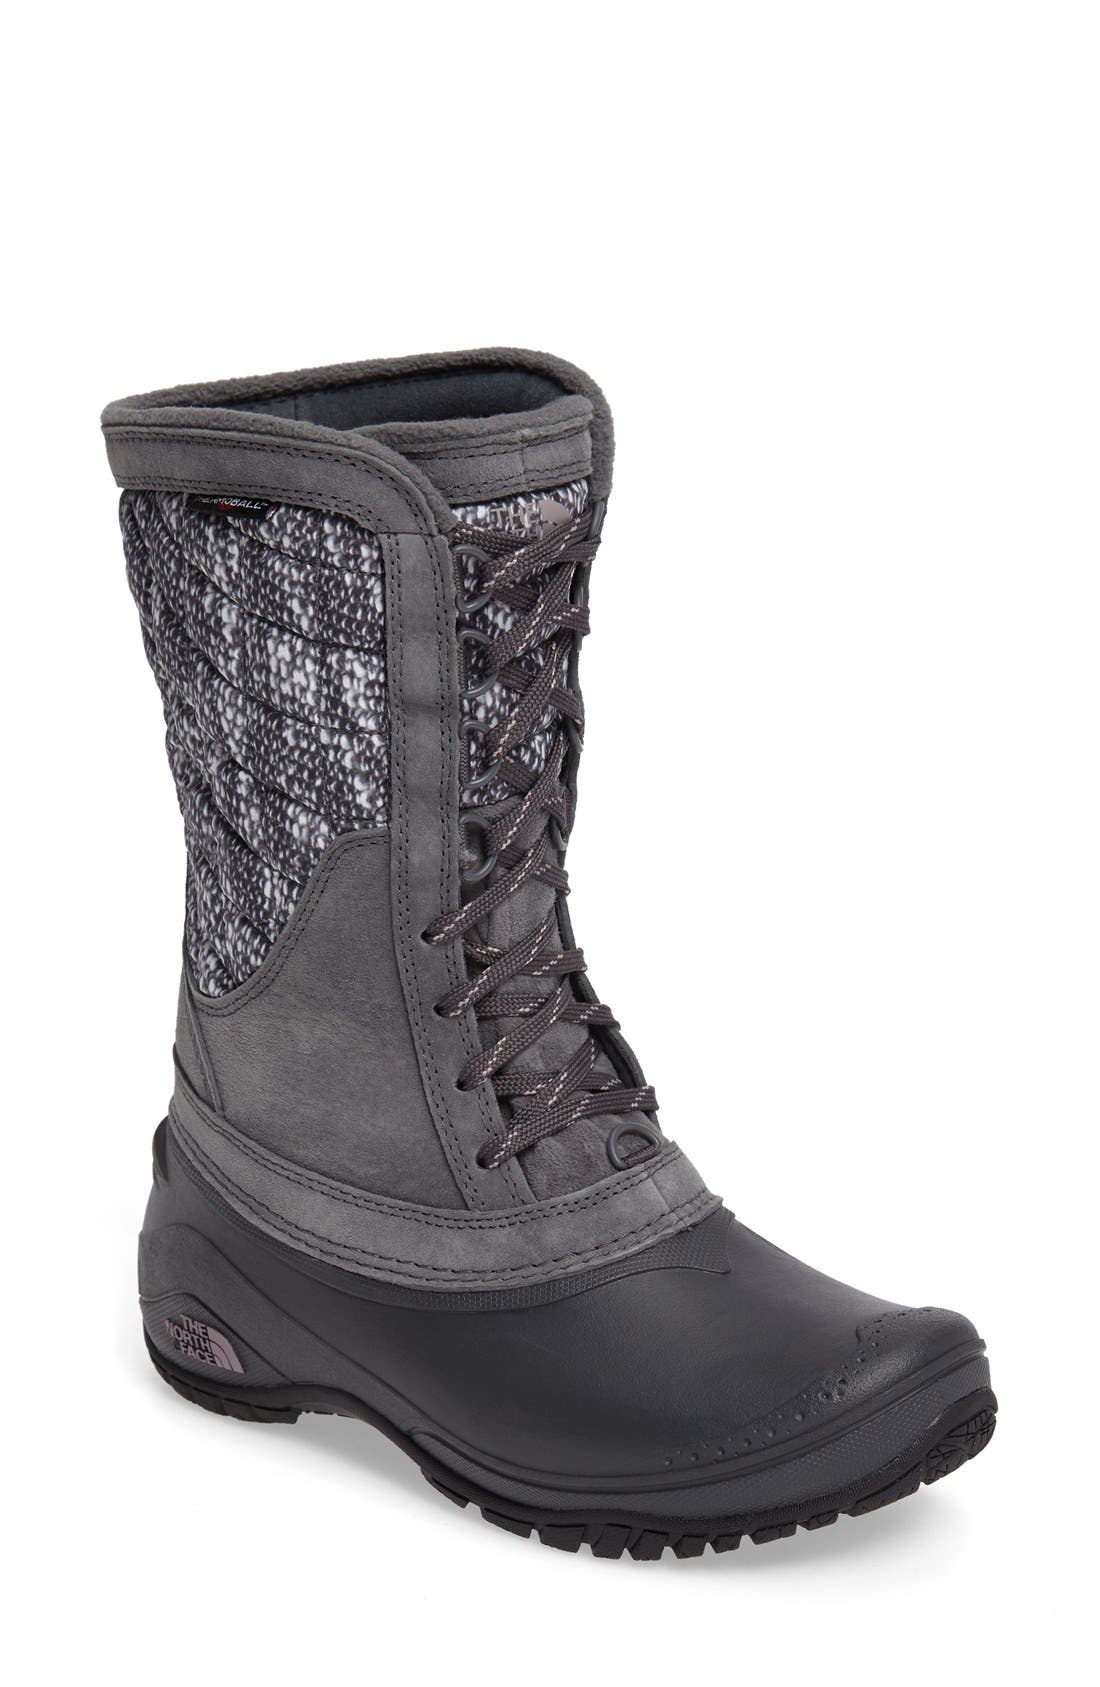 Main Image - The North Face ThermoBall™ Utility Waterproof Boot (Women)